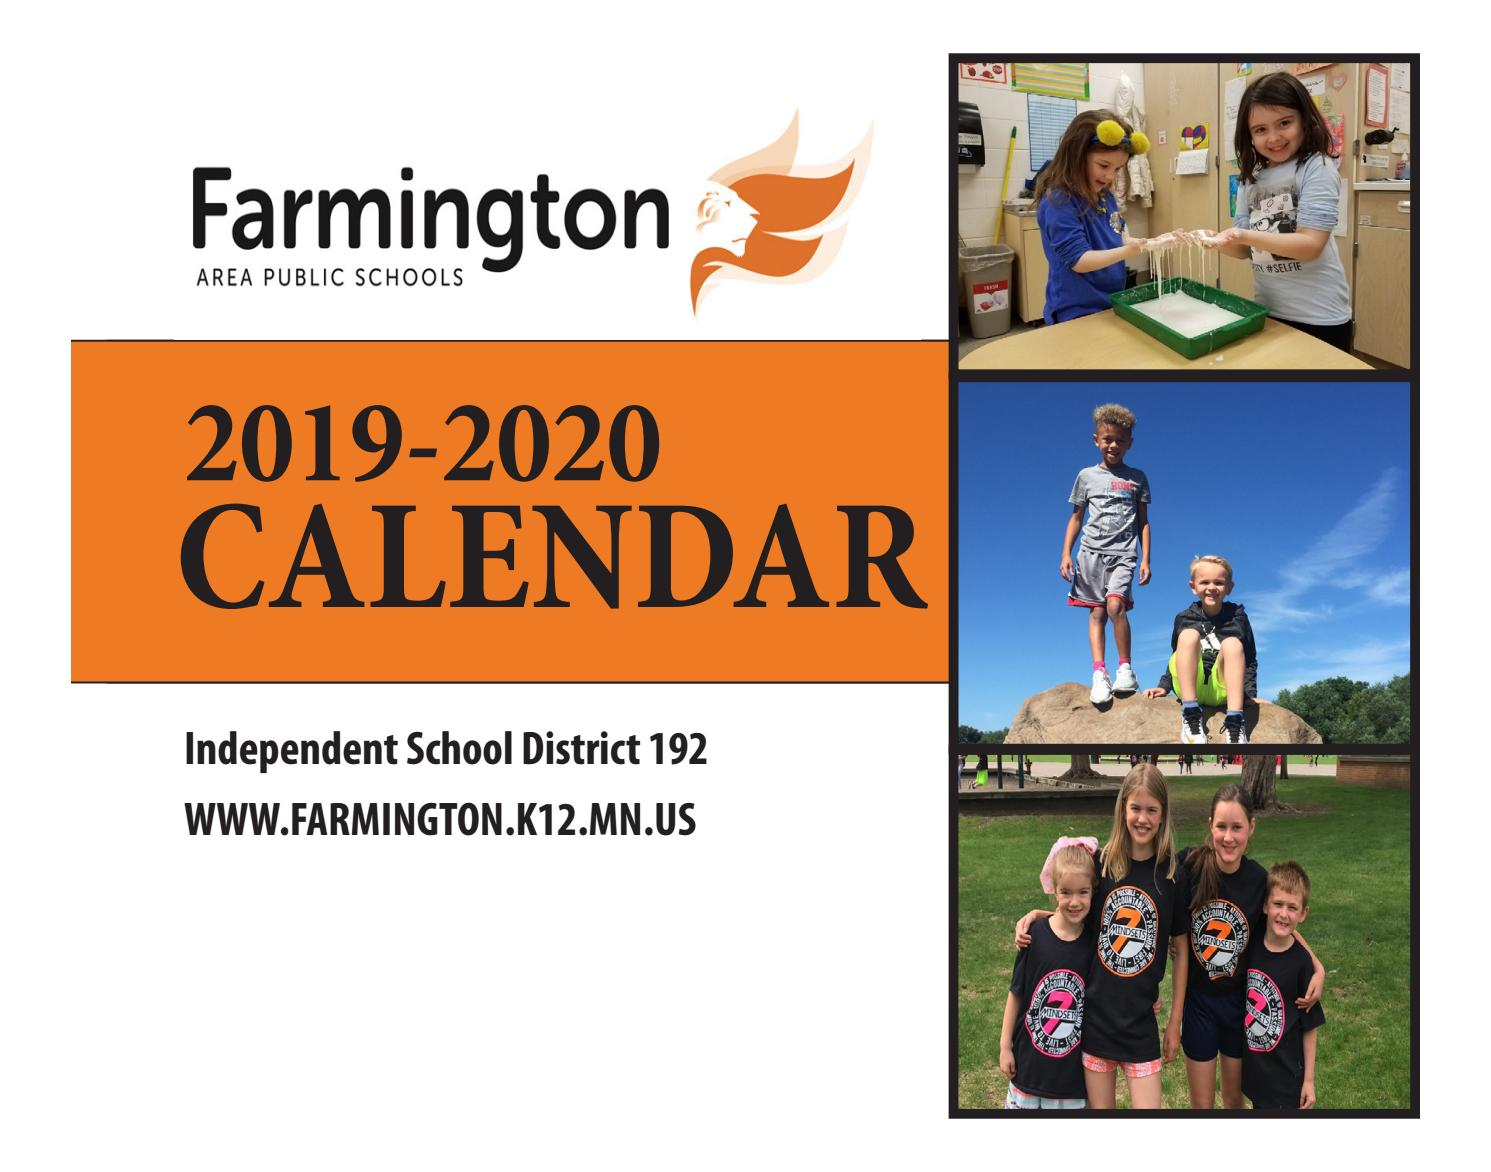 Farmington Ct School Calendar 2021-2022 2019 2020 District 192 Calendar by Sally McConnaughey   issuu